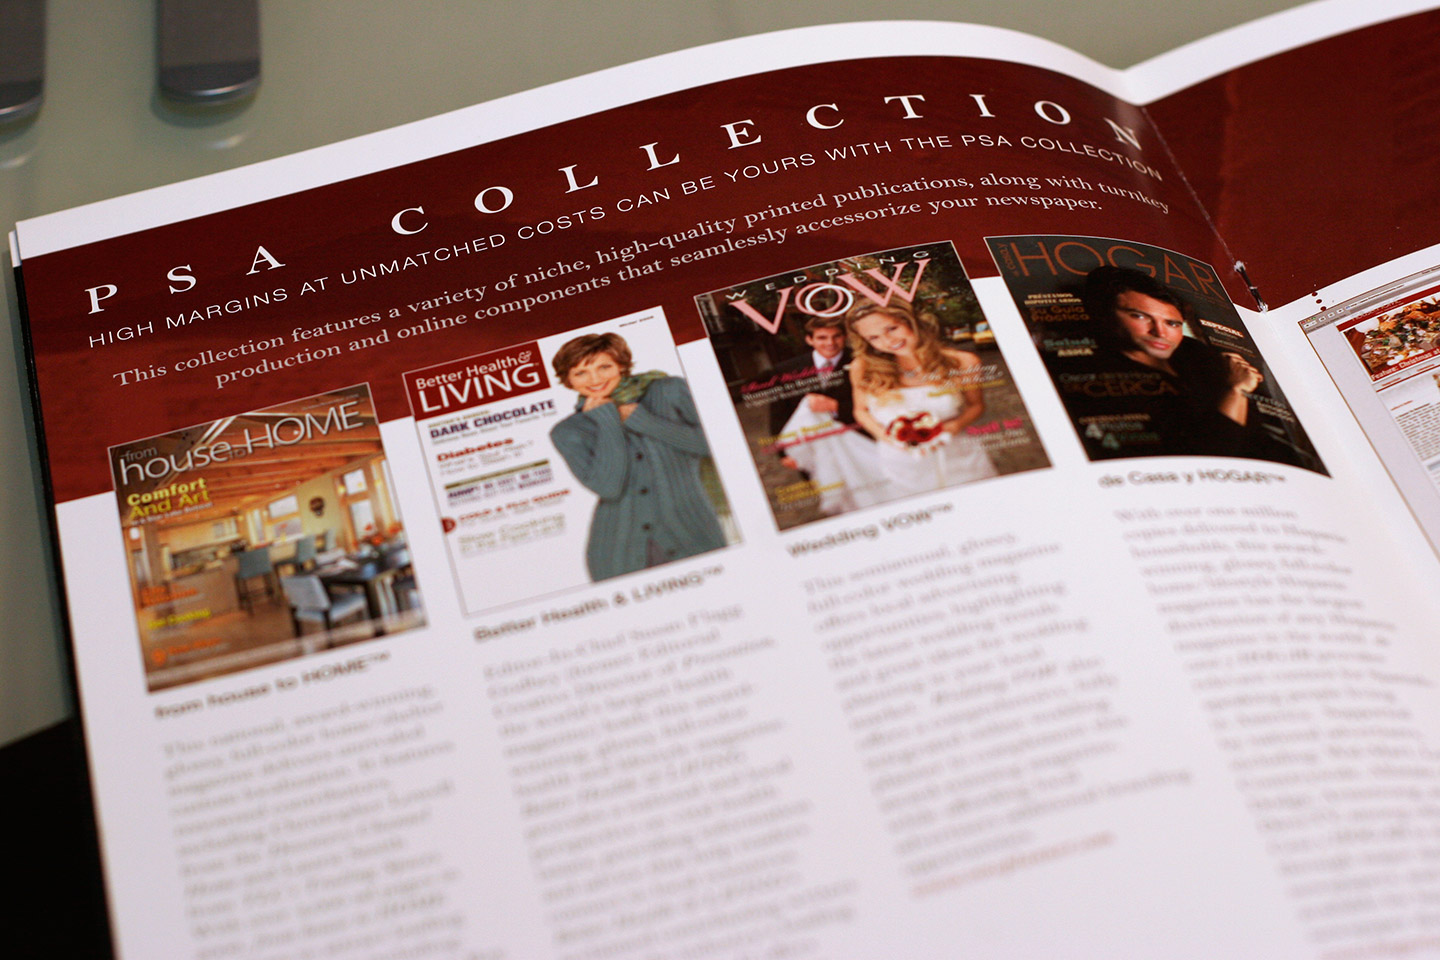 Maroon and white magazine spread